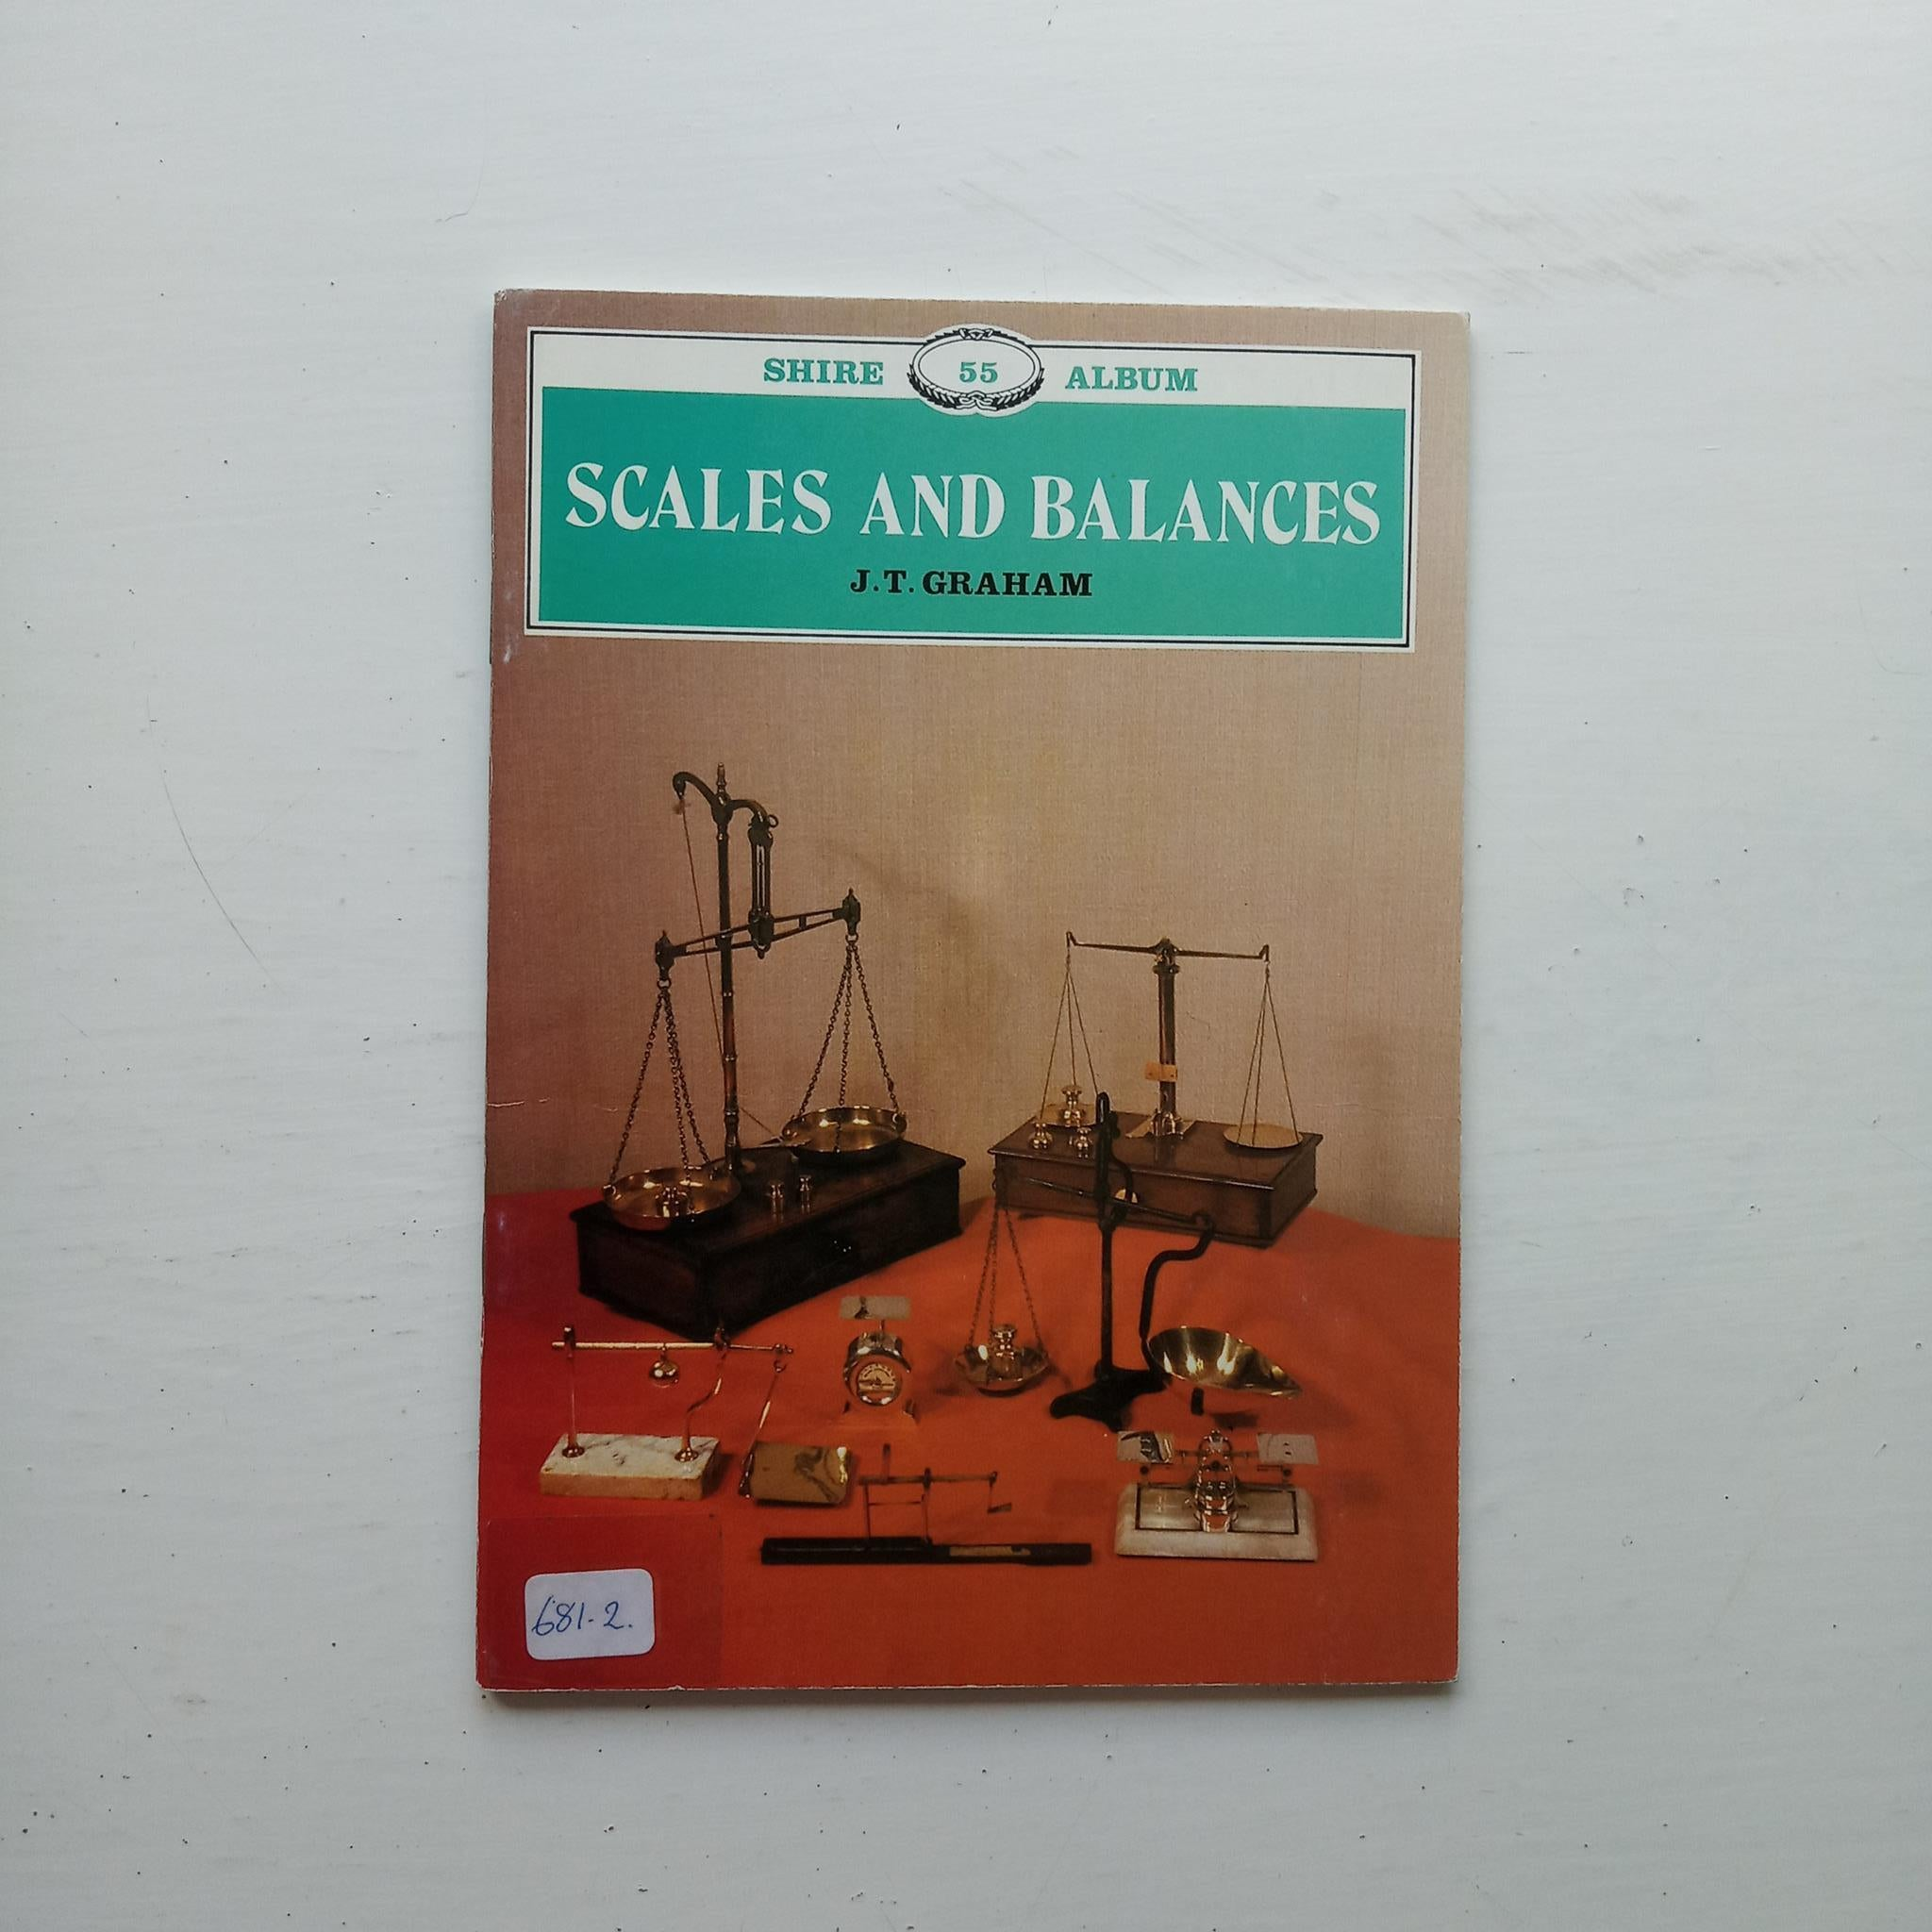 Scales and Balances by J.T. Graham